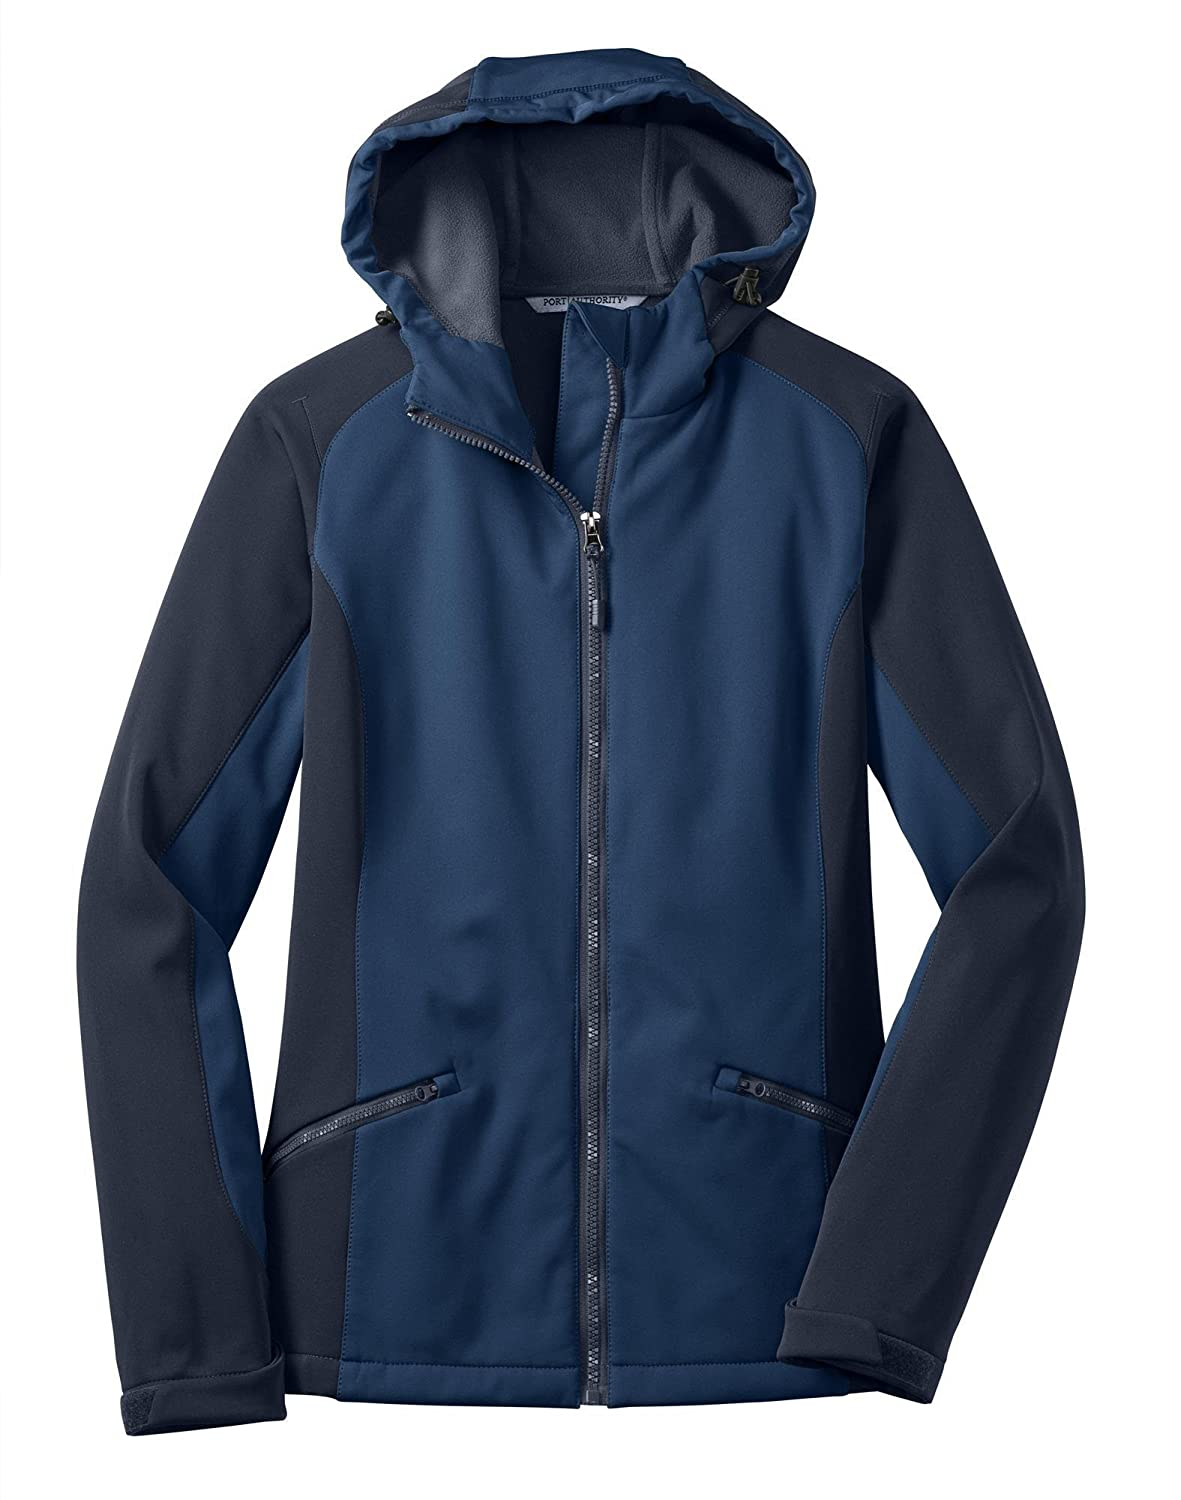 Port Authority Ladies Hooded Soft Shell Jacket> Insignia Blue/Navy Eclipse